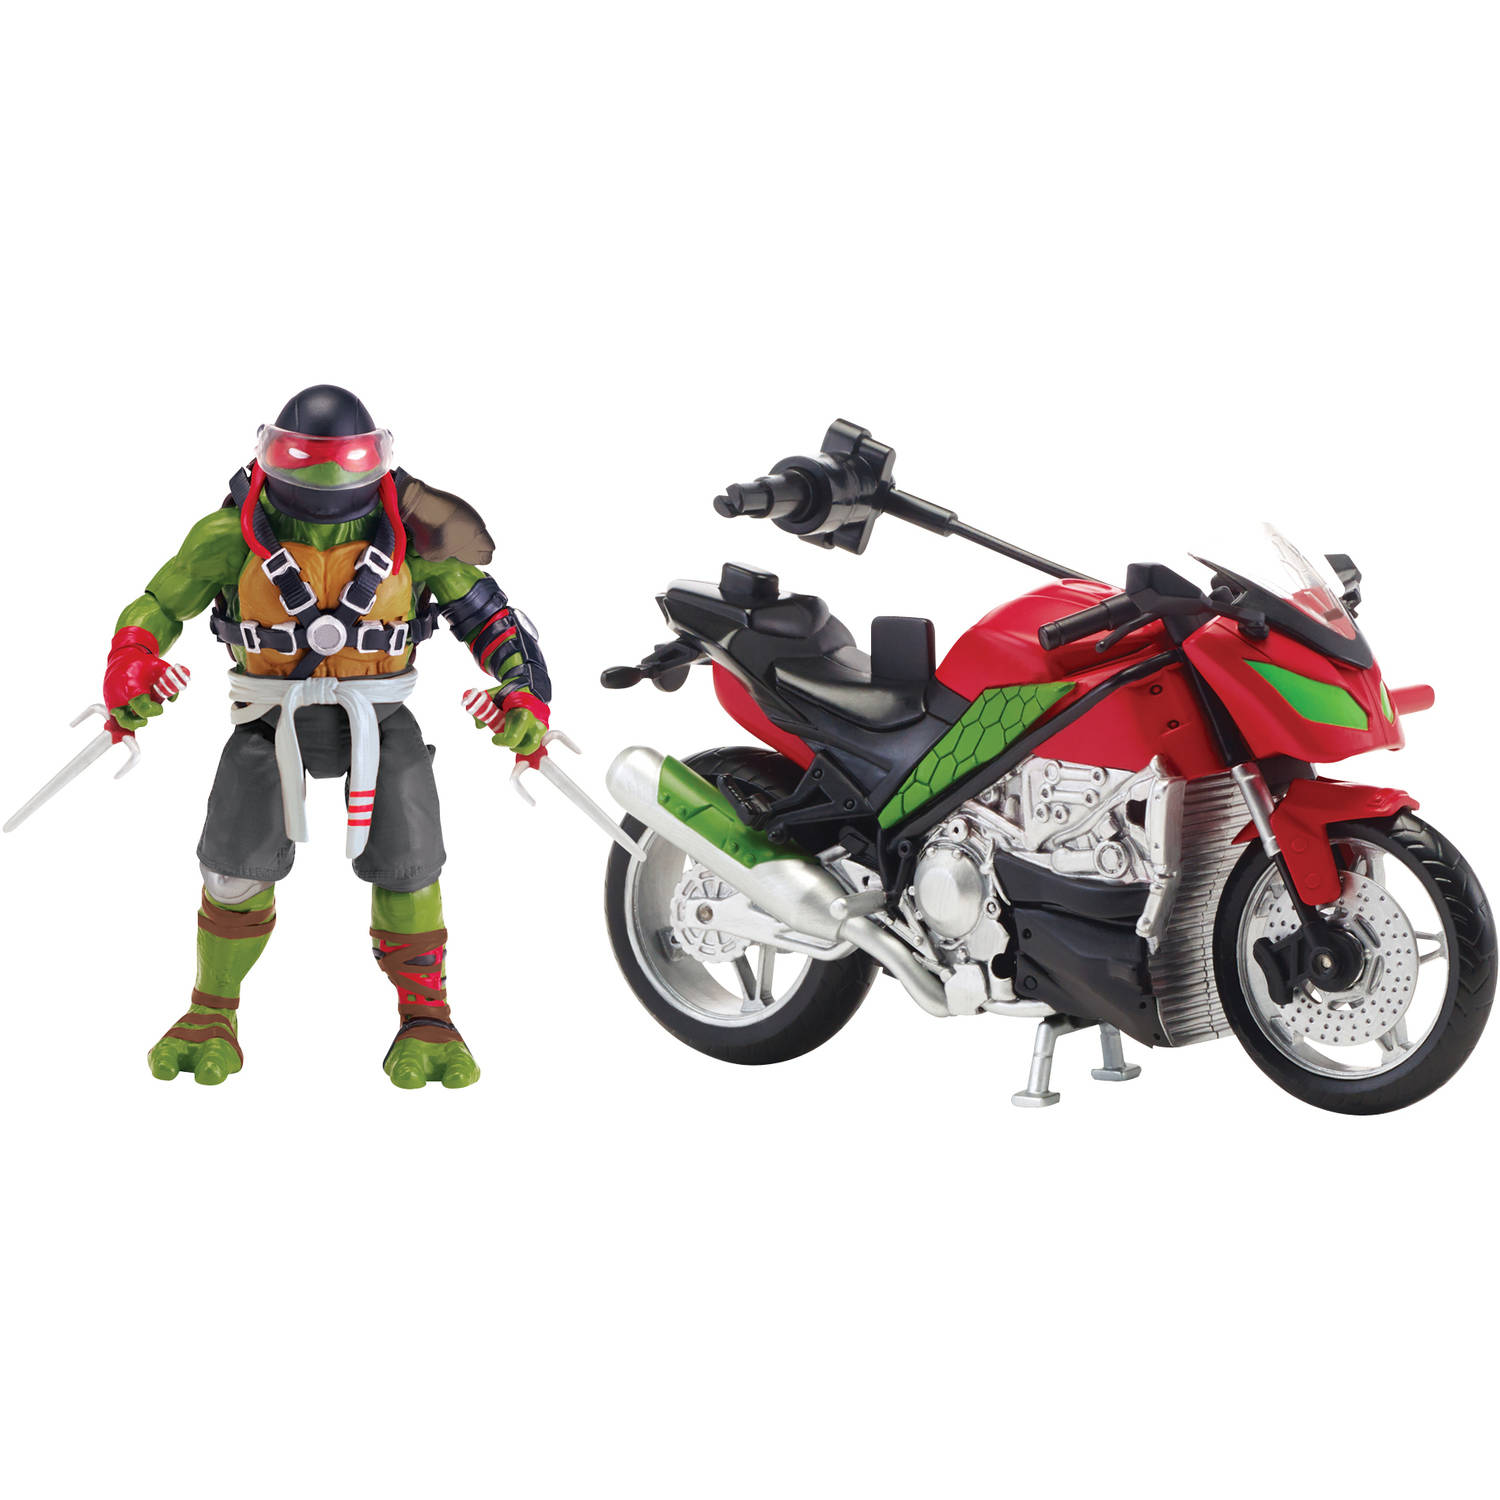 Teenage Mutant Ninja Turtles Movie II Raphael with Motorcycle